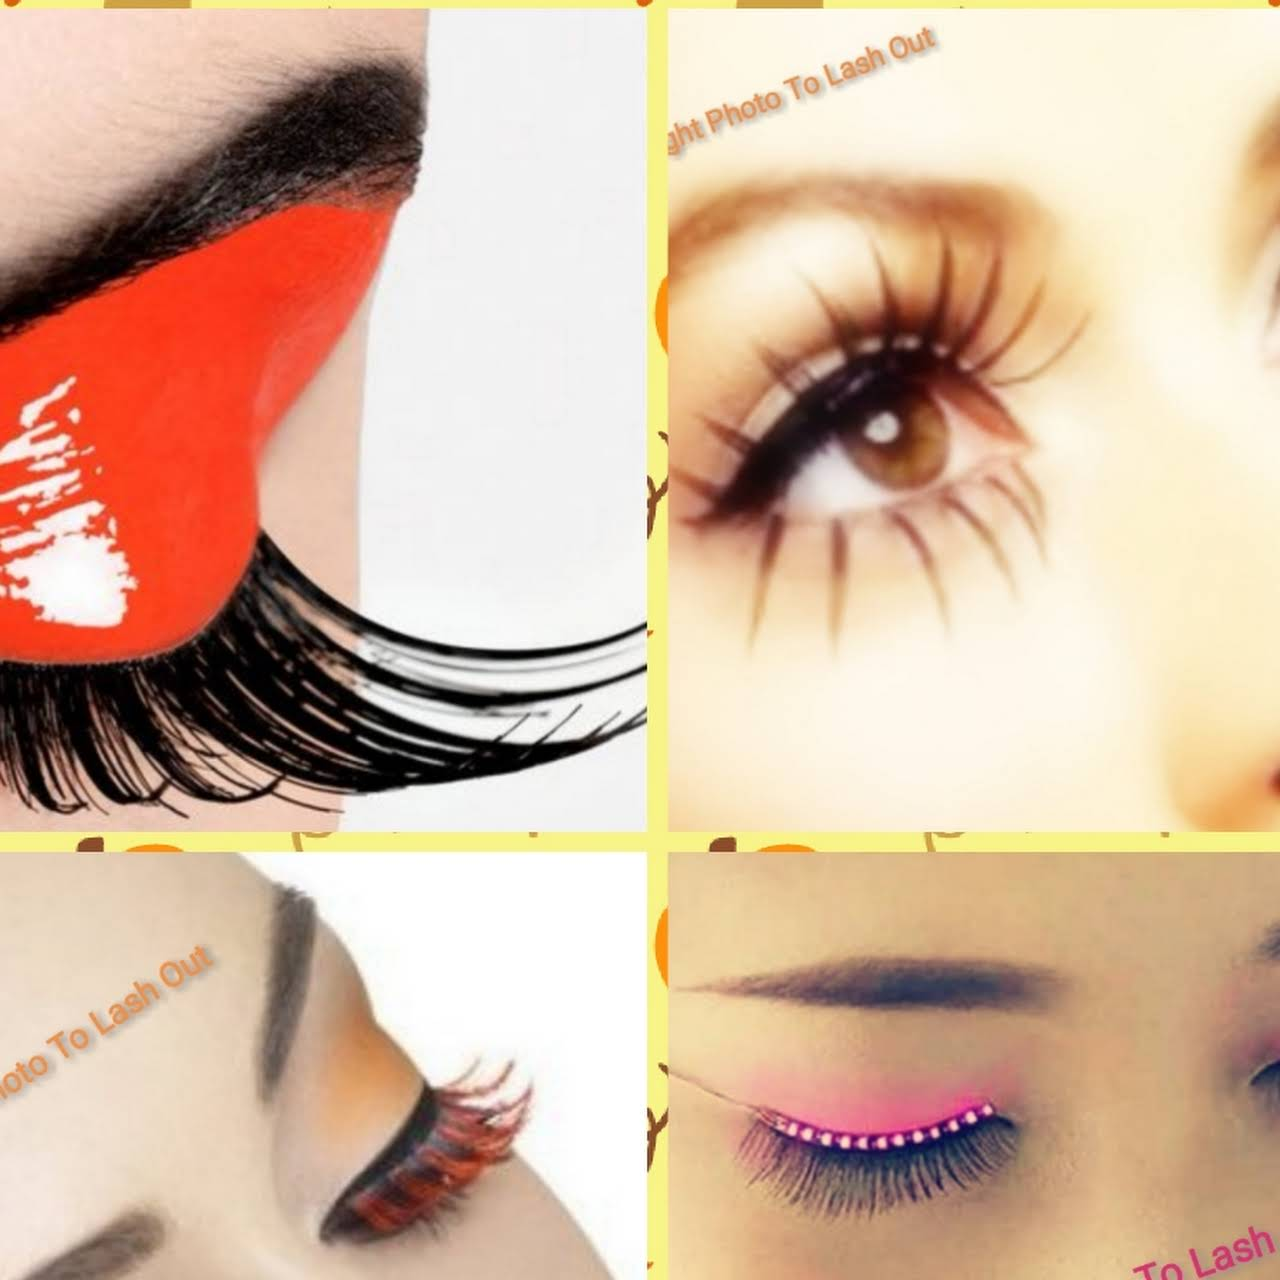 Lash Out Lash Salon In Corunna Ontario